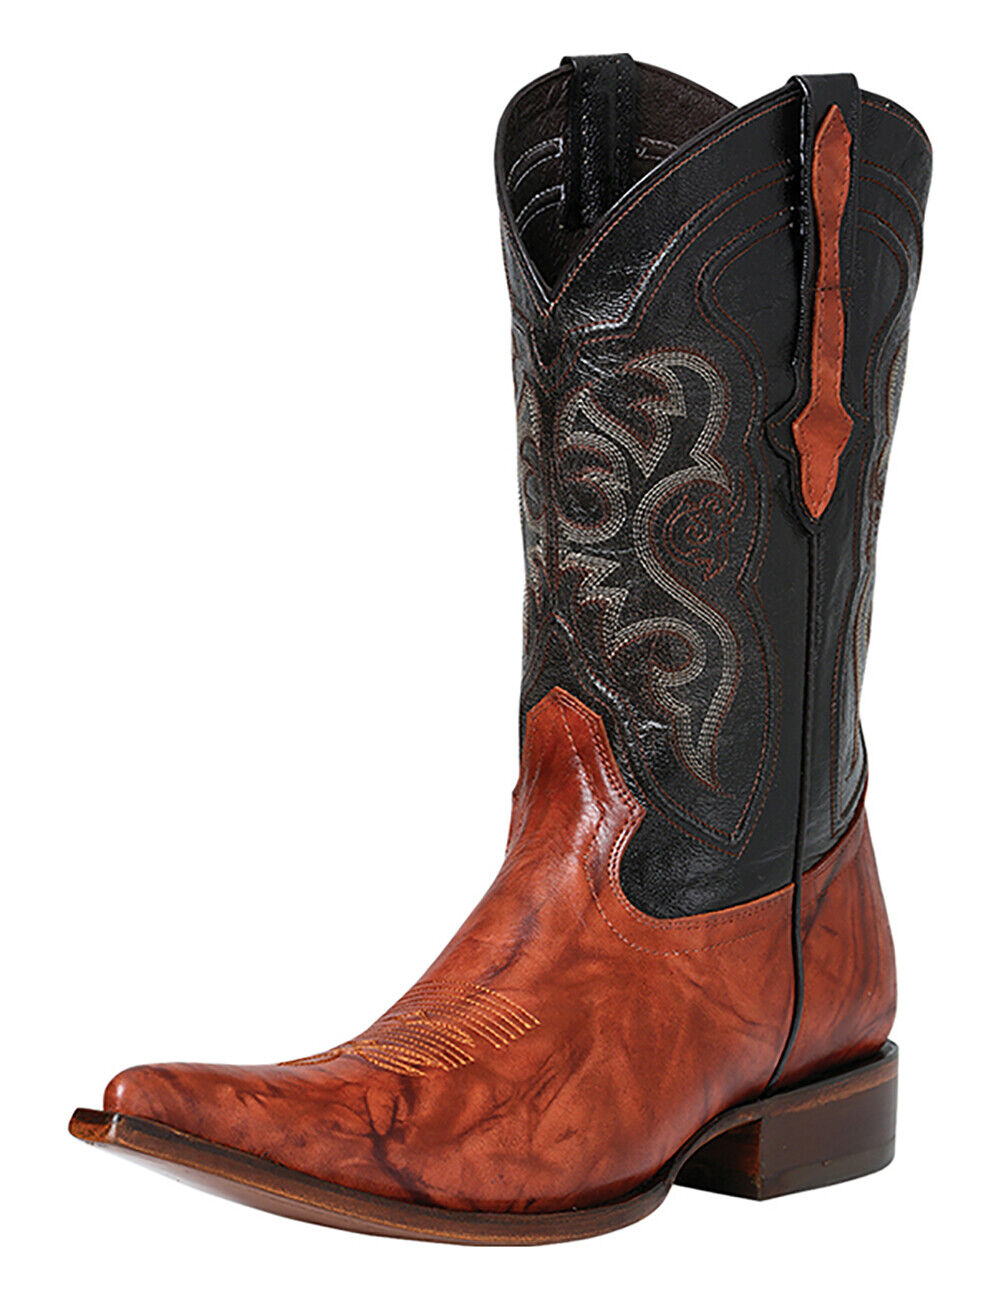 El General Western Cowboy Boots Real Leather Rust Color Pointed Toe